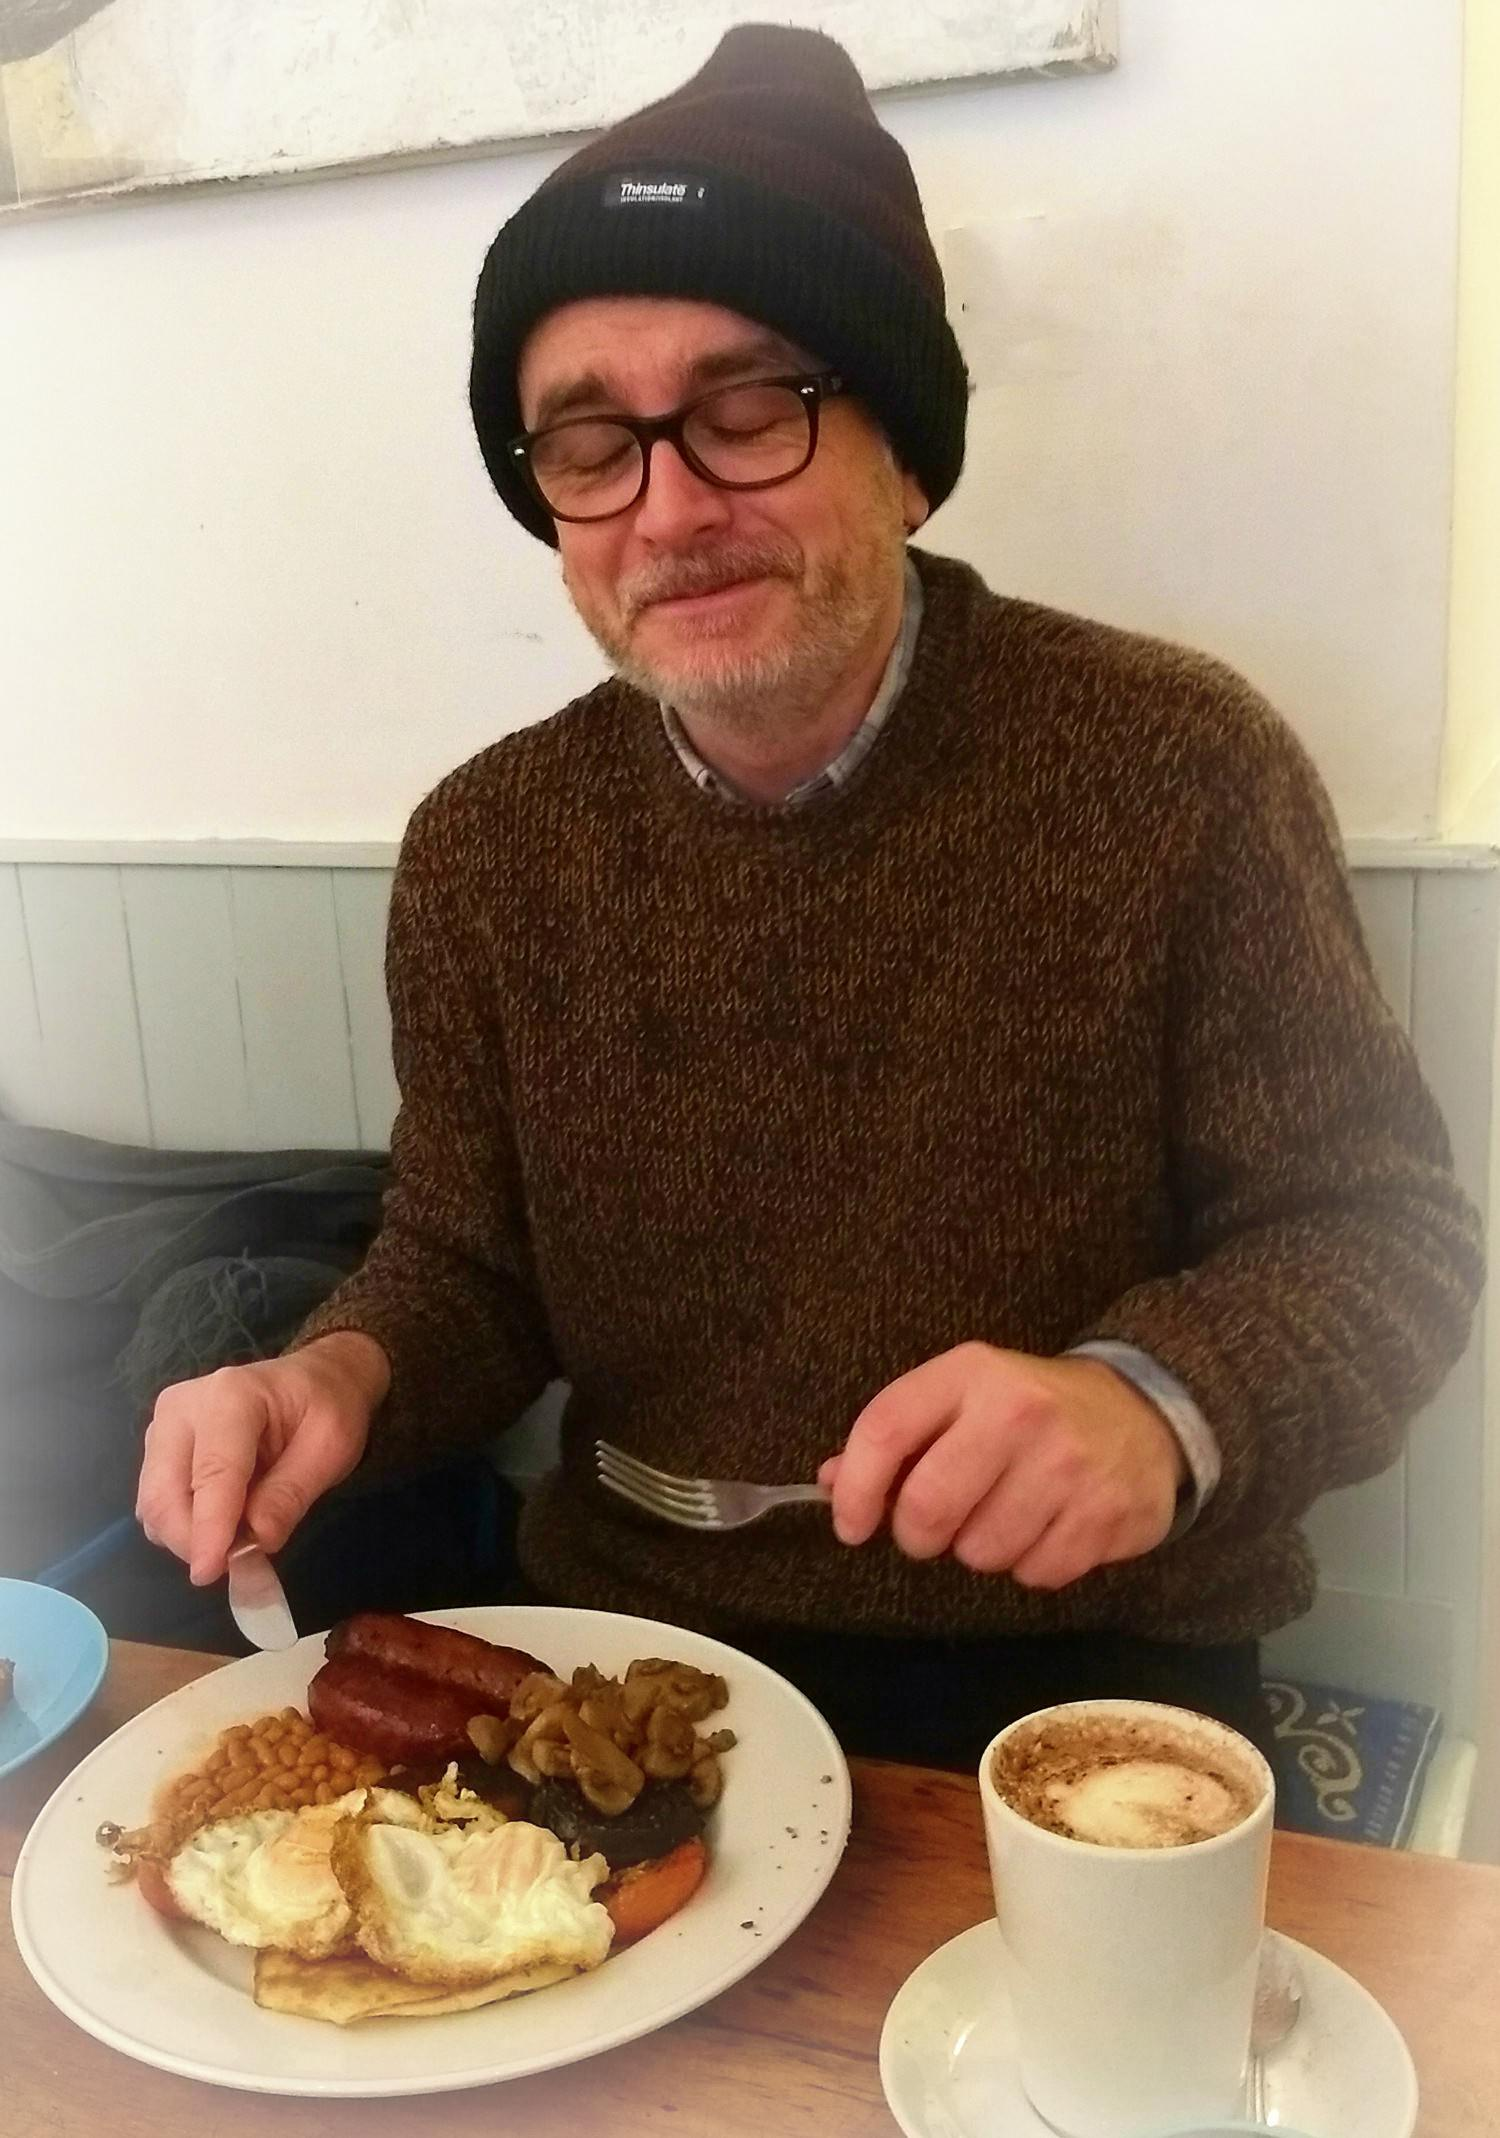 A reluctant pose for the camera. Getting stuck into the traditional Irish Breakfast at the 'Lovingspoon' North Frederick Street, Dublin.